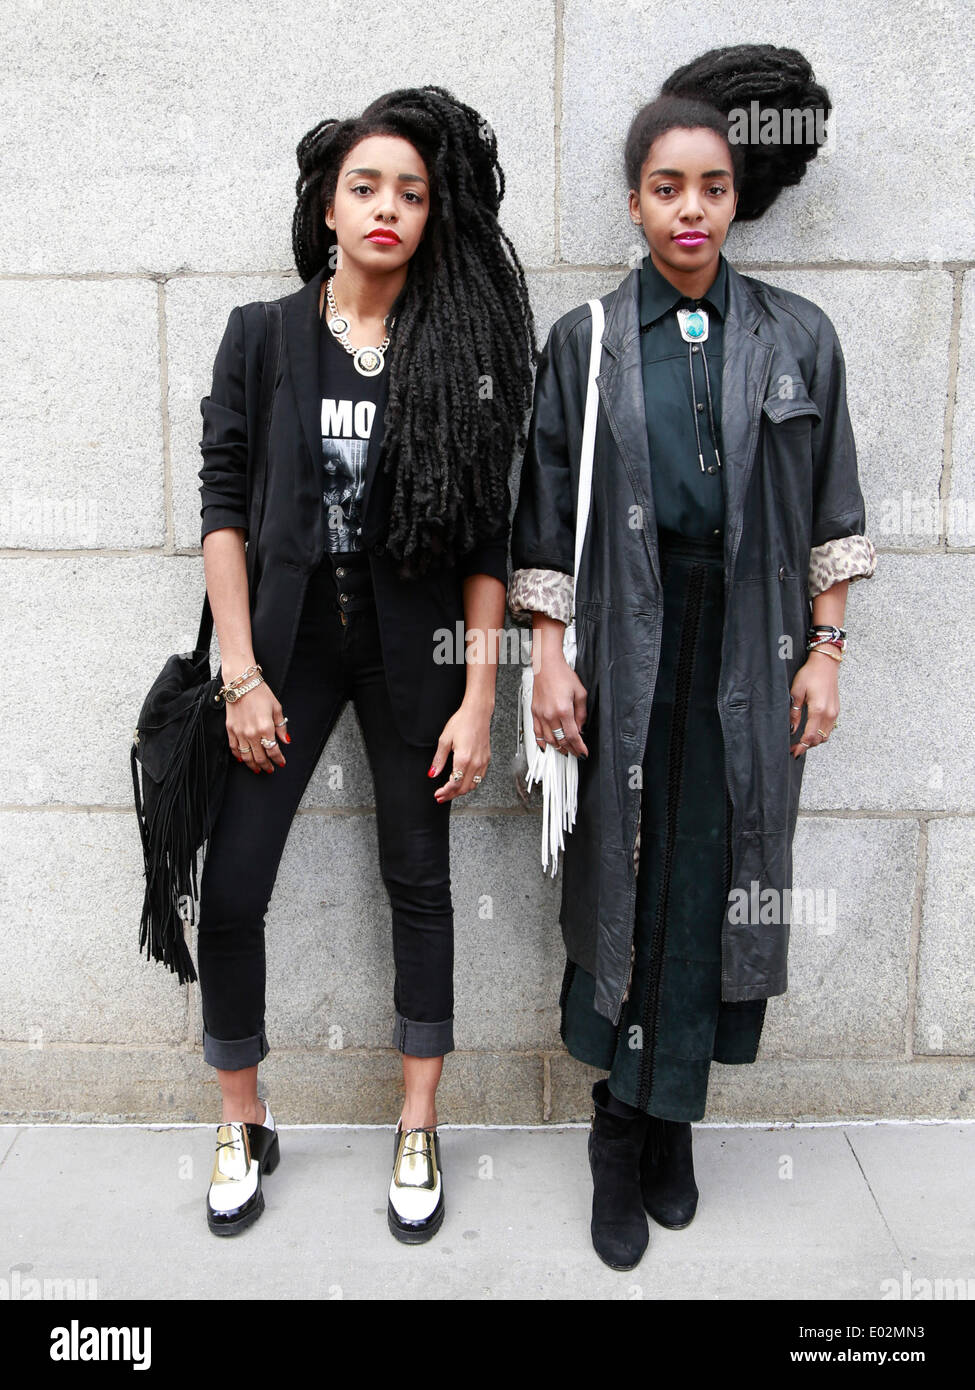 Twin sisters TK Wonder and Cipriana Quann strolling in New York City - April 25, 2014 - Photo: Runway Manhattan/Charles Eshelman/picture alliance - Stock Image